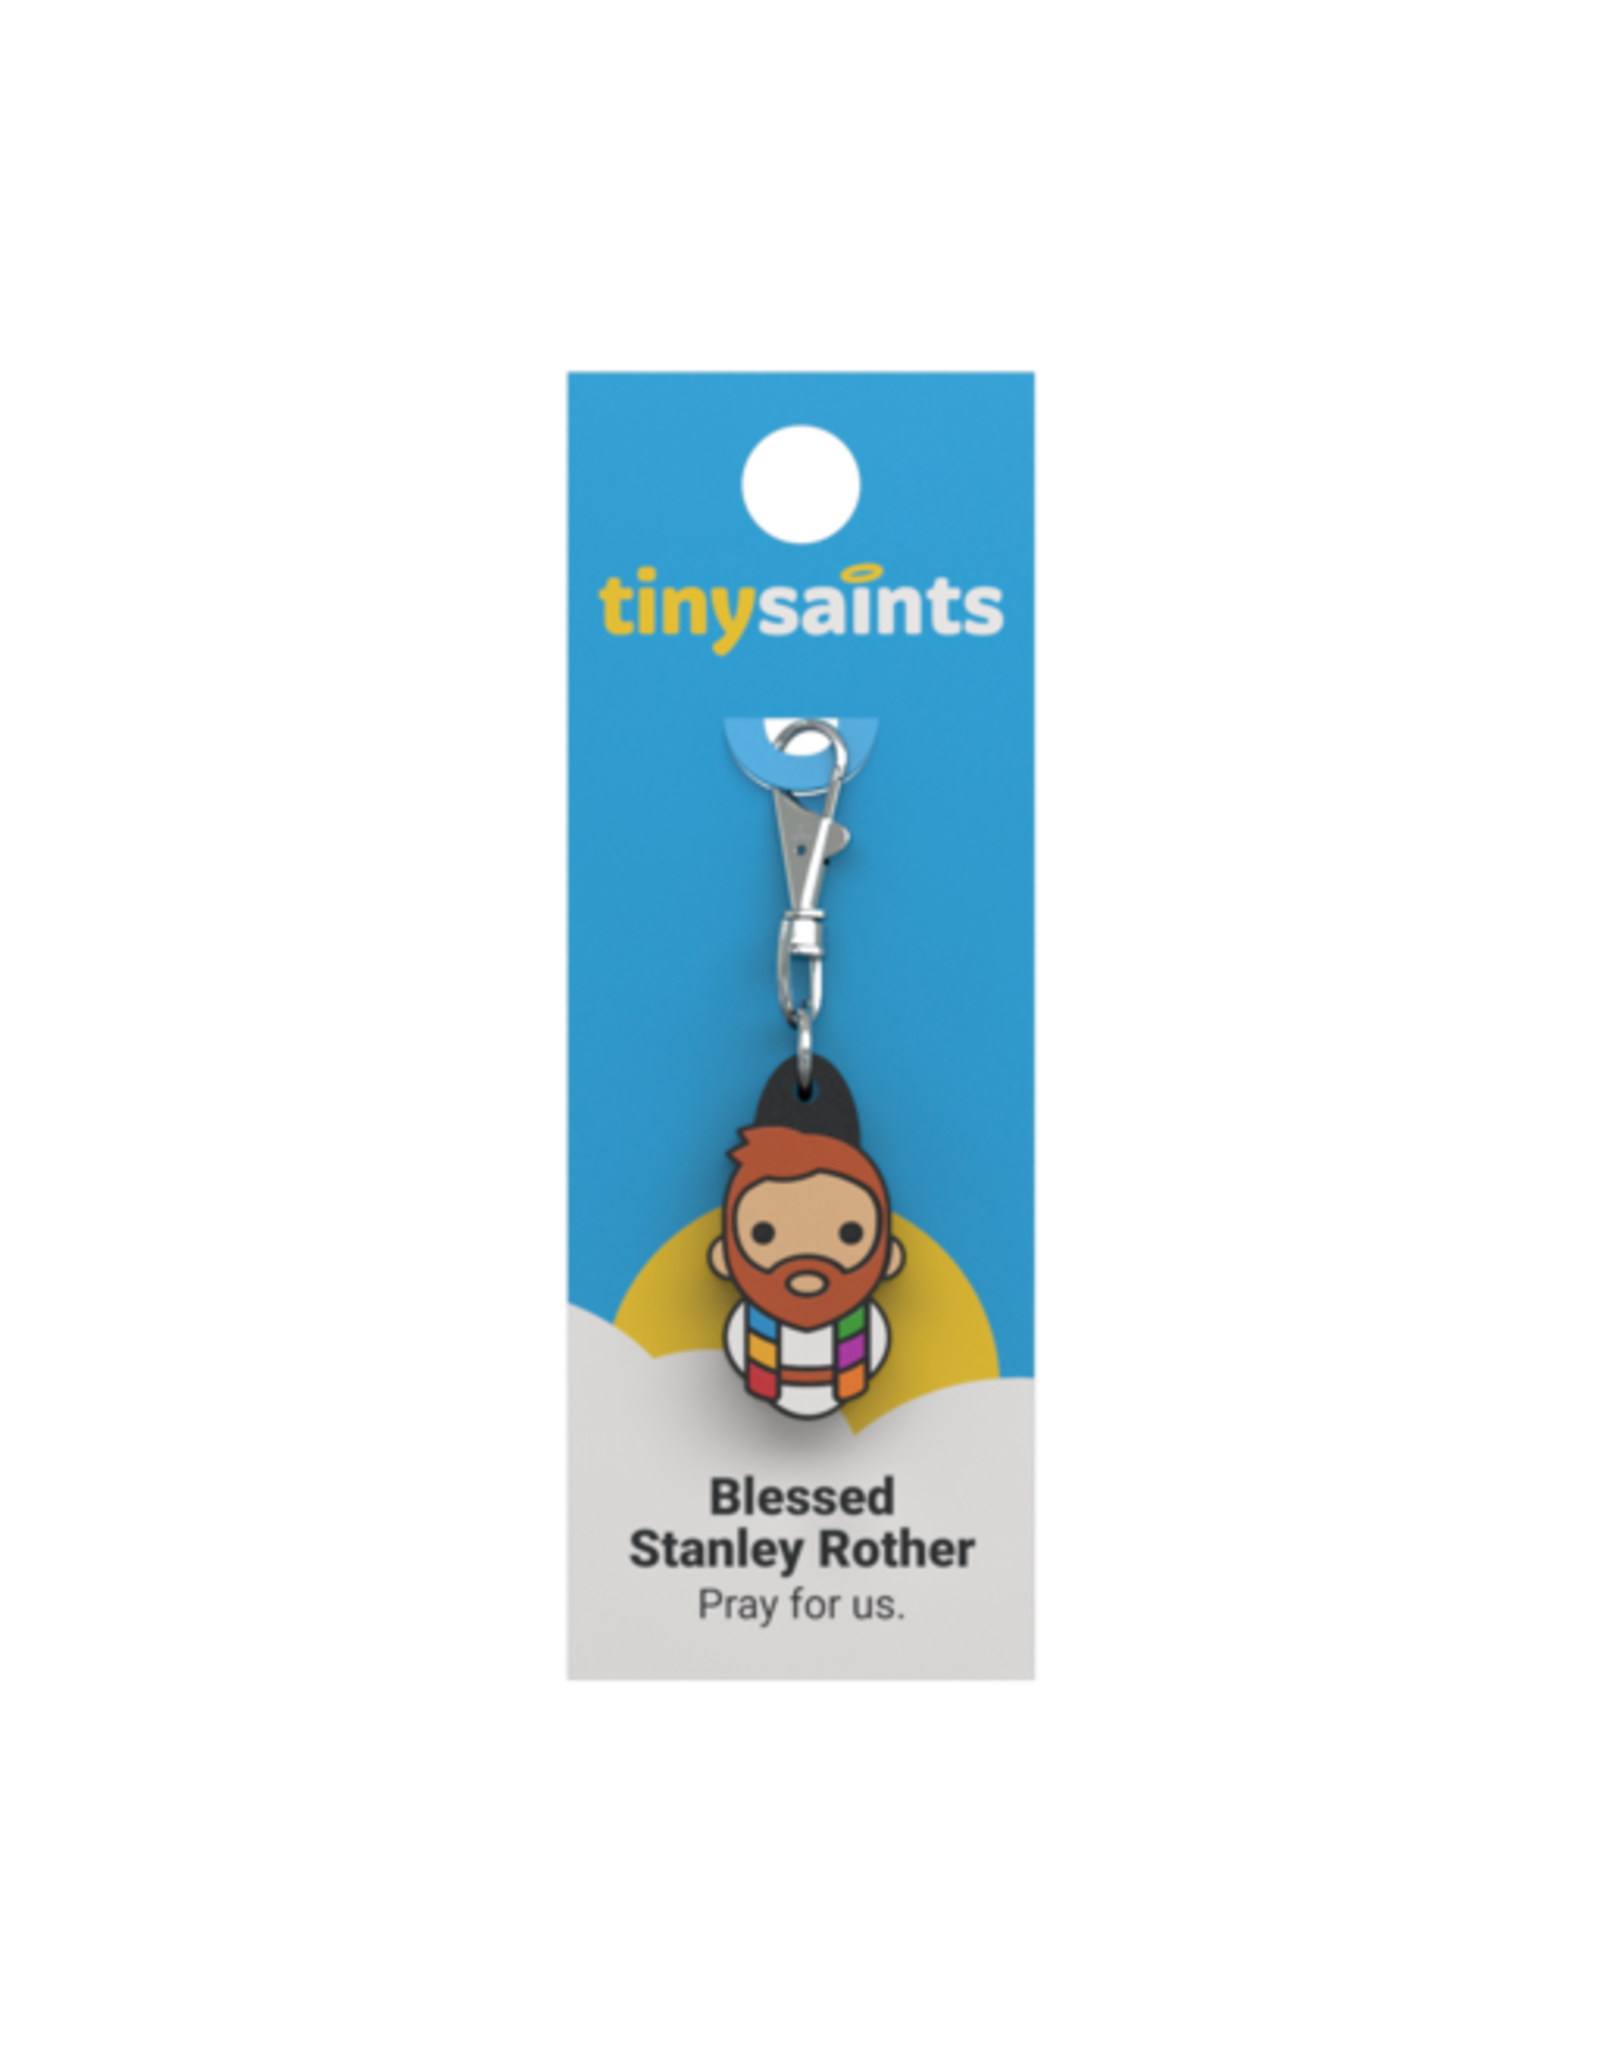 Tiny Saints Tiny Saints Charm - Blessed Stanley Rother